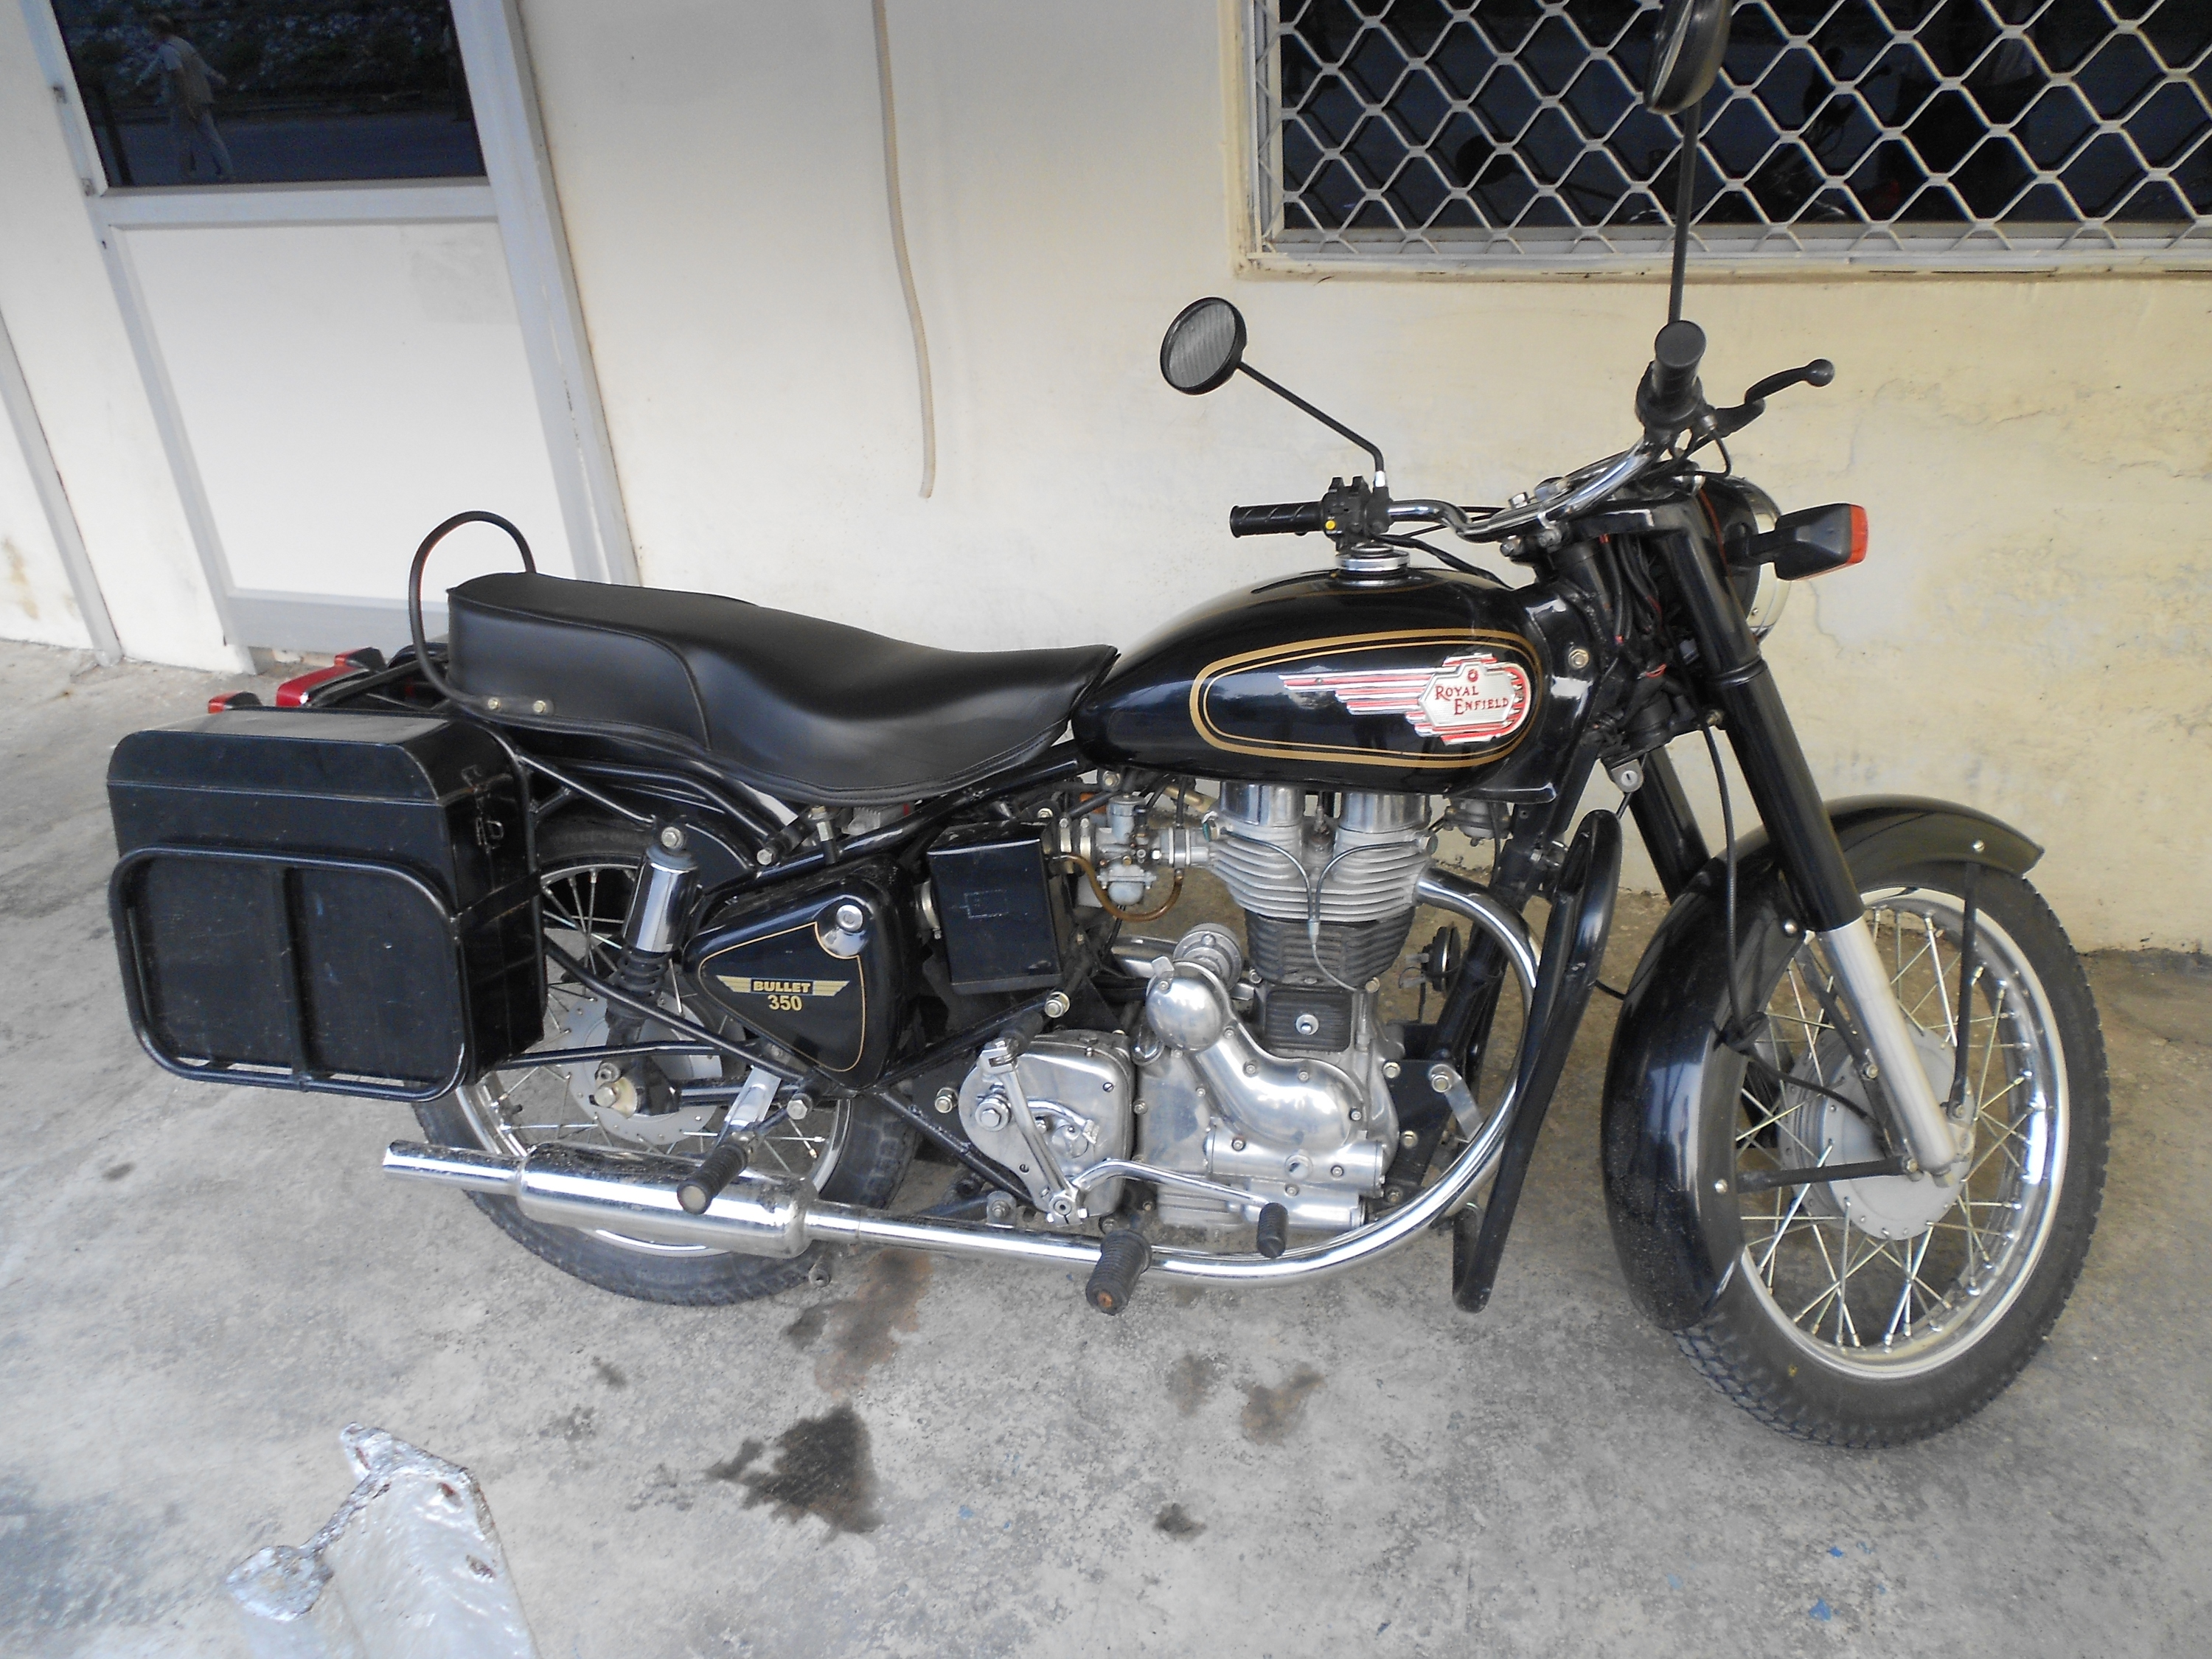 Royal Enfield Bullet 350 Army images #122954